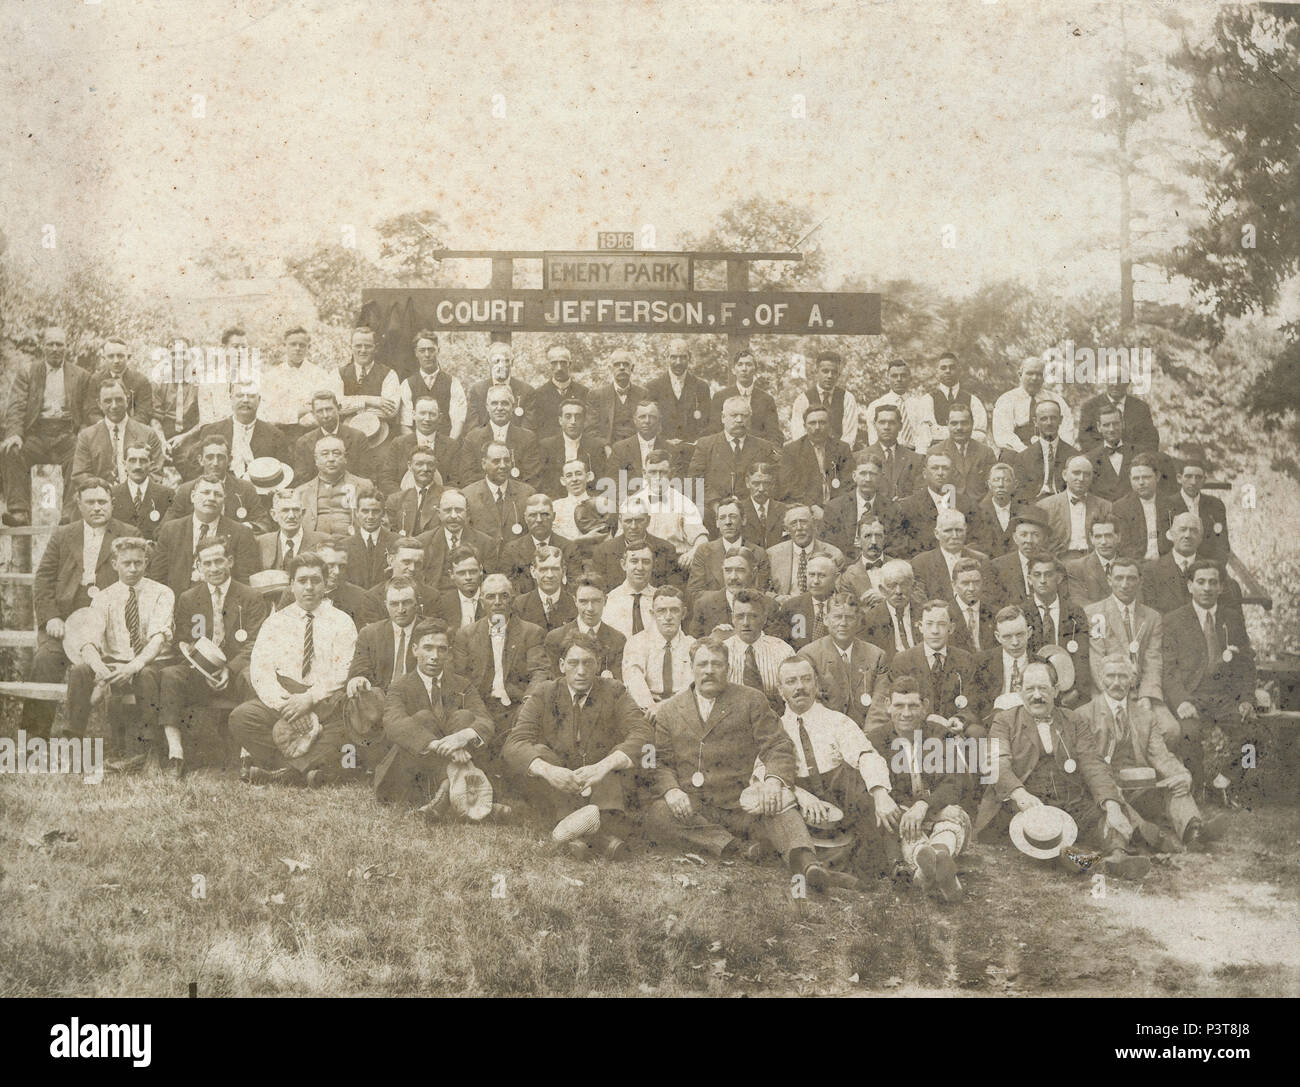 Antique 1916 photograph, Court Jefferson of the Ancient Order of Foresters of America group photograph at Emery Park, Providence, Rhode Island. SOURCE: ORIGINAL PHOTOGRAPH - Stock Image